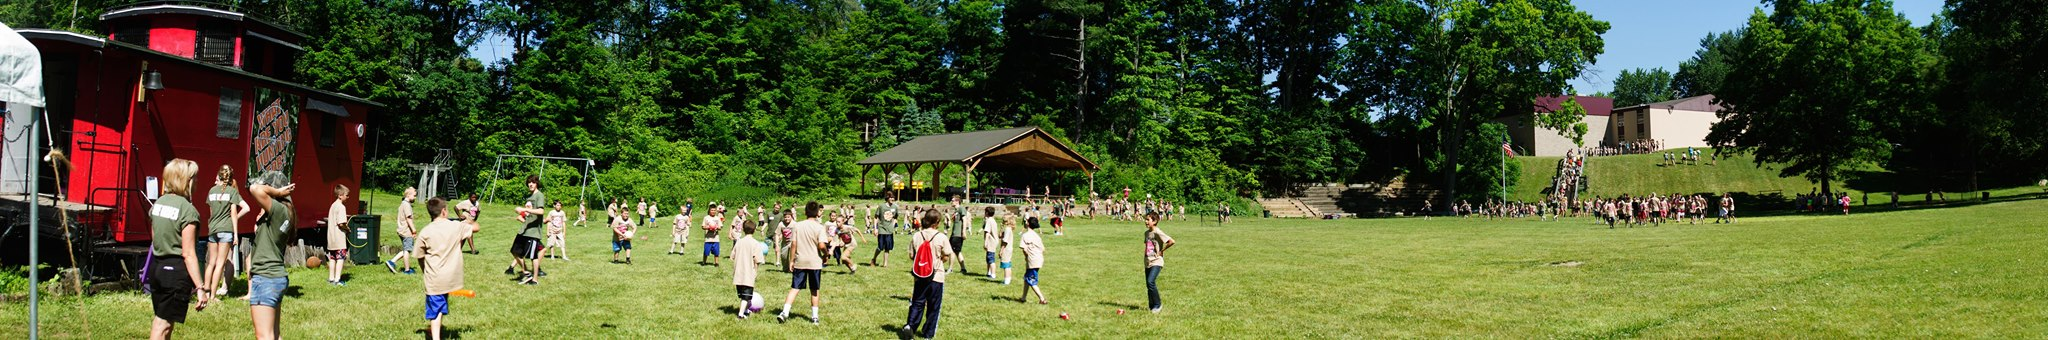 Maranatha Day Camp rec area (2014)